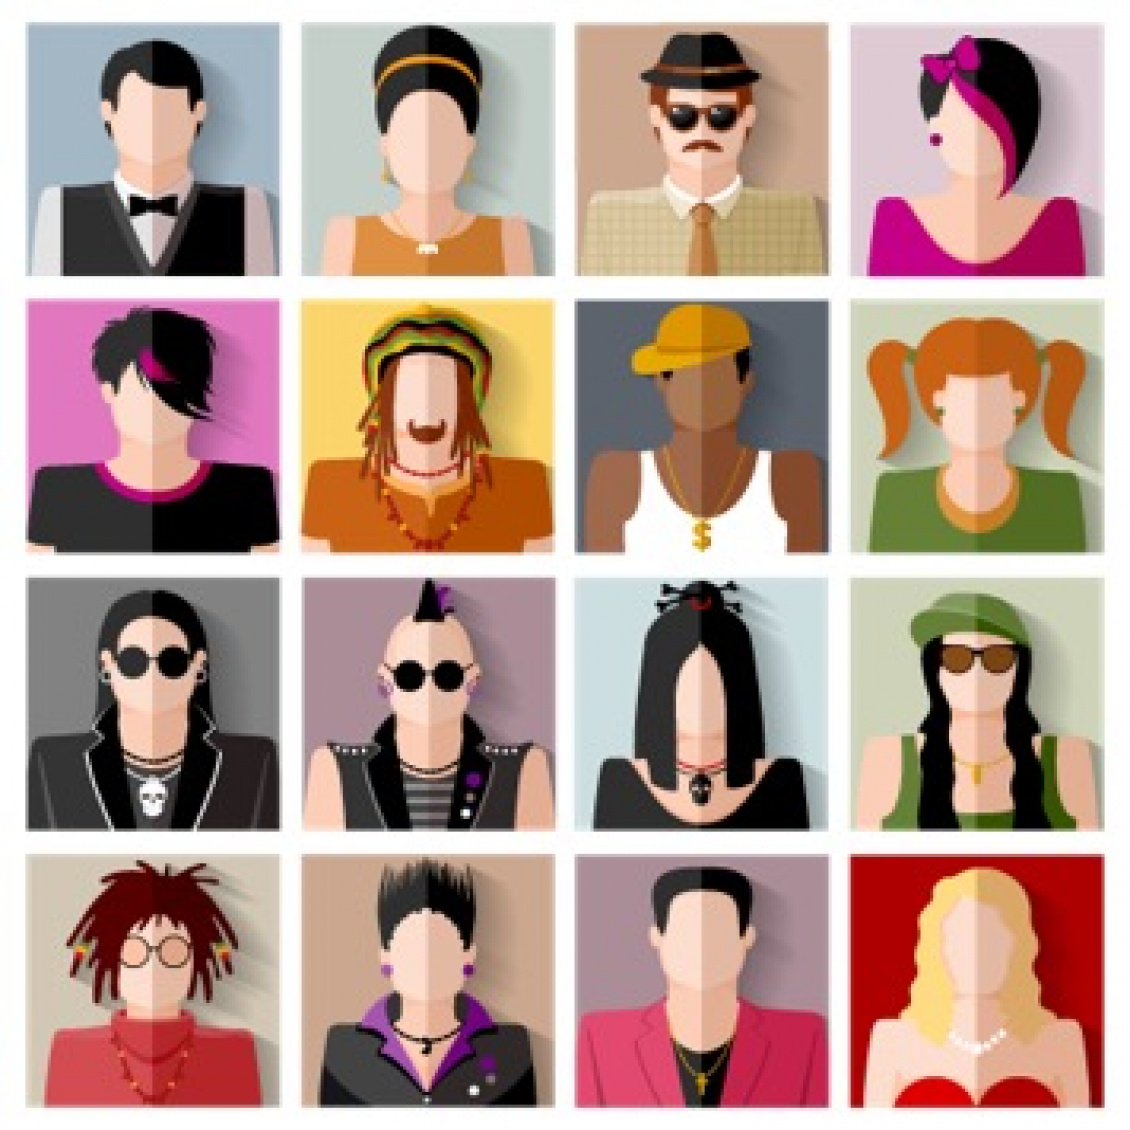 The-Marketing-to-Millennials-The-Myth-Dissected-